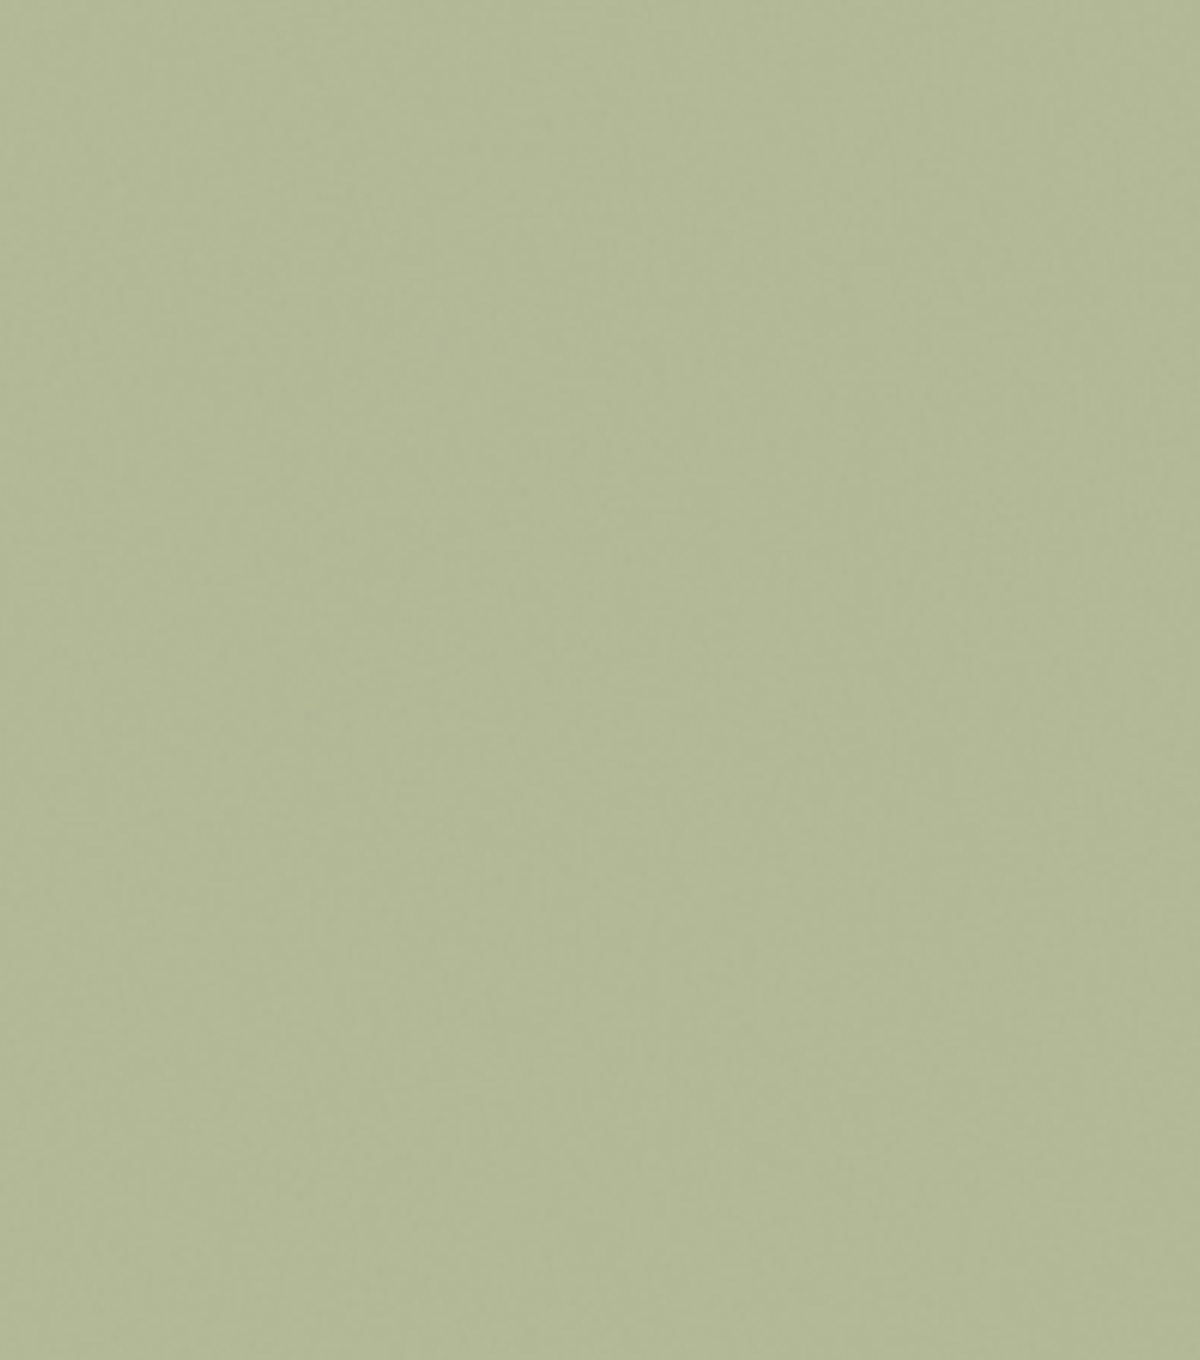 Delta Ceramcoat Acrylic Paint 2 oz, Stonewedge Green